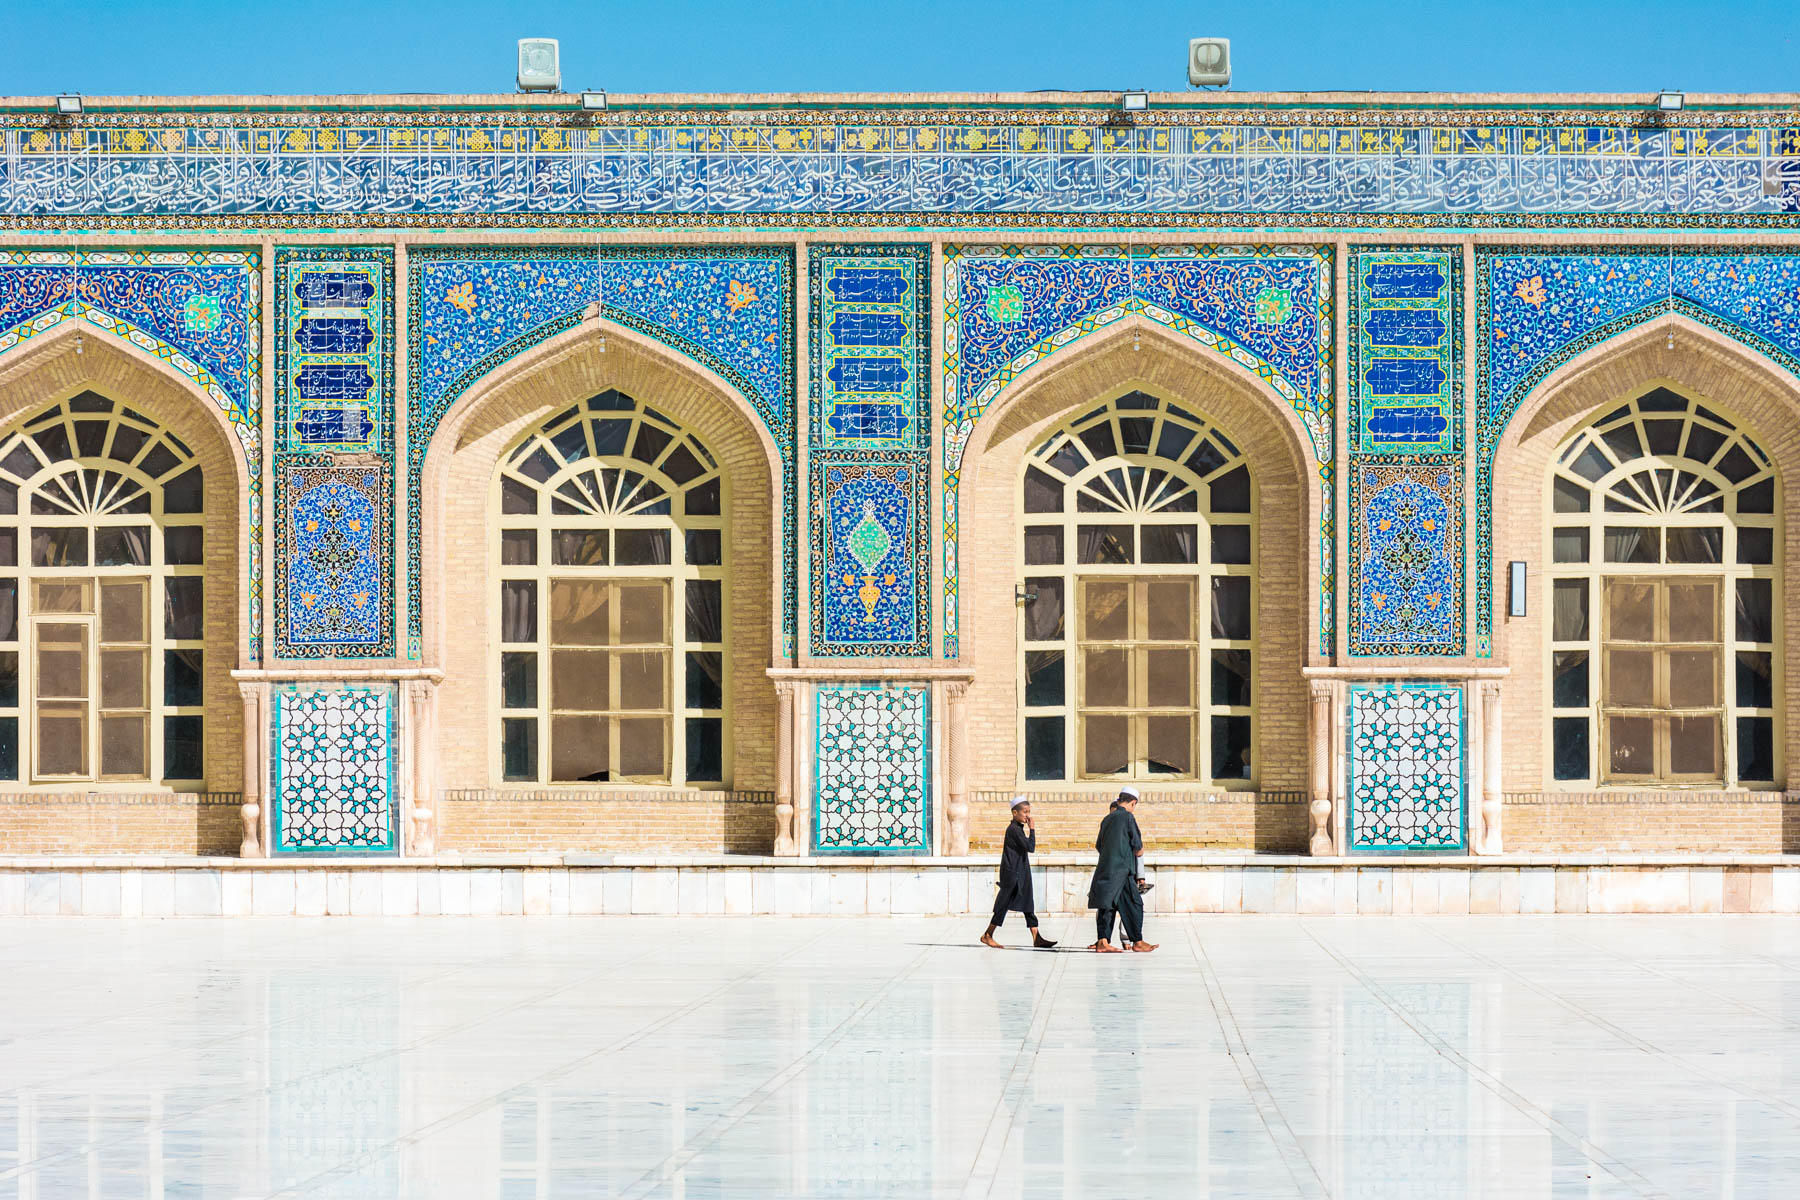 Boys walking in the Jame (Friday) Mosque in Herat, Afghanistan